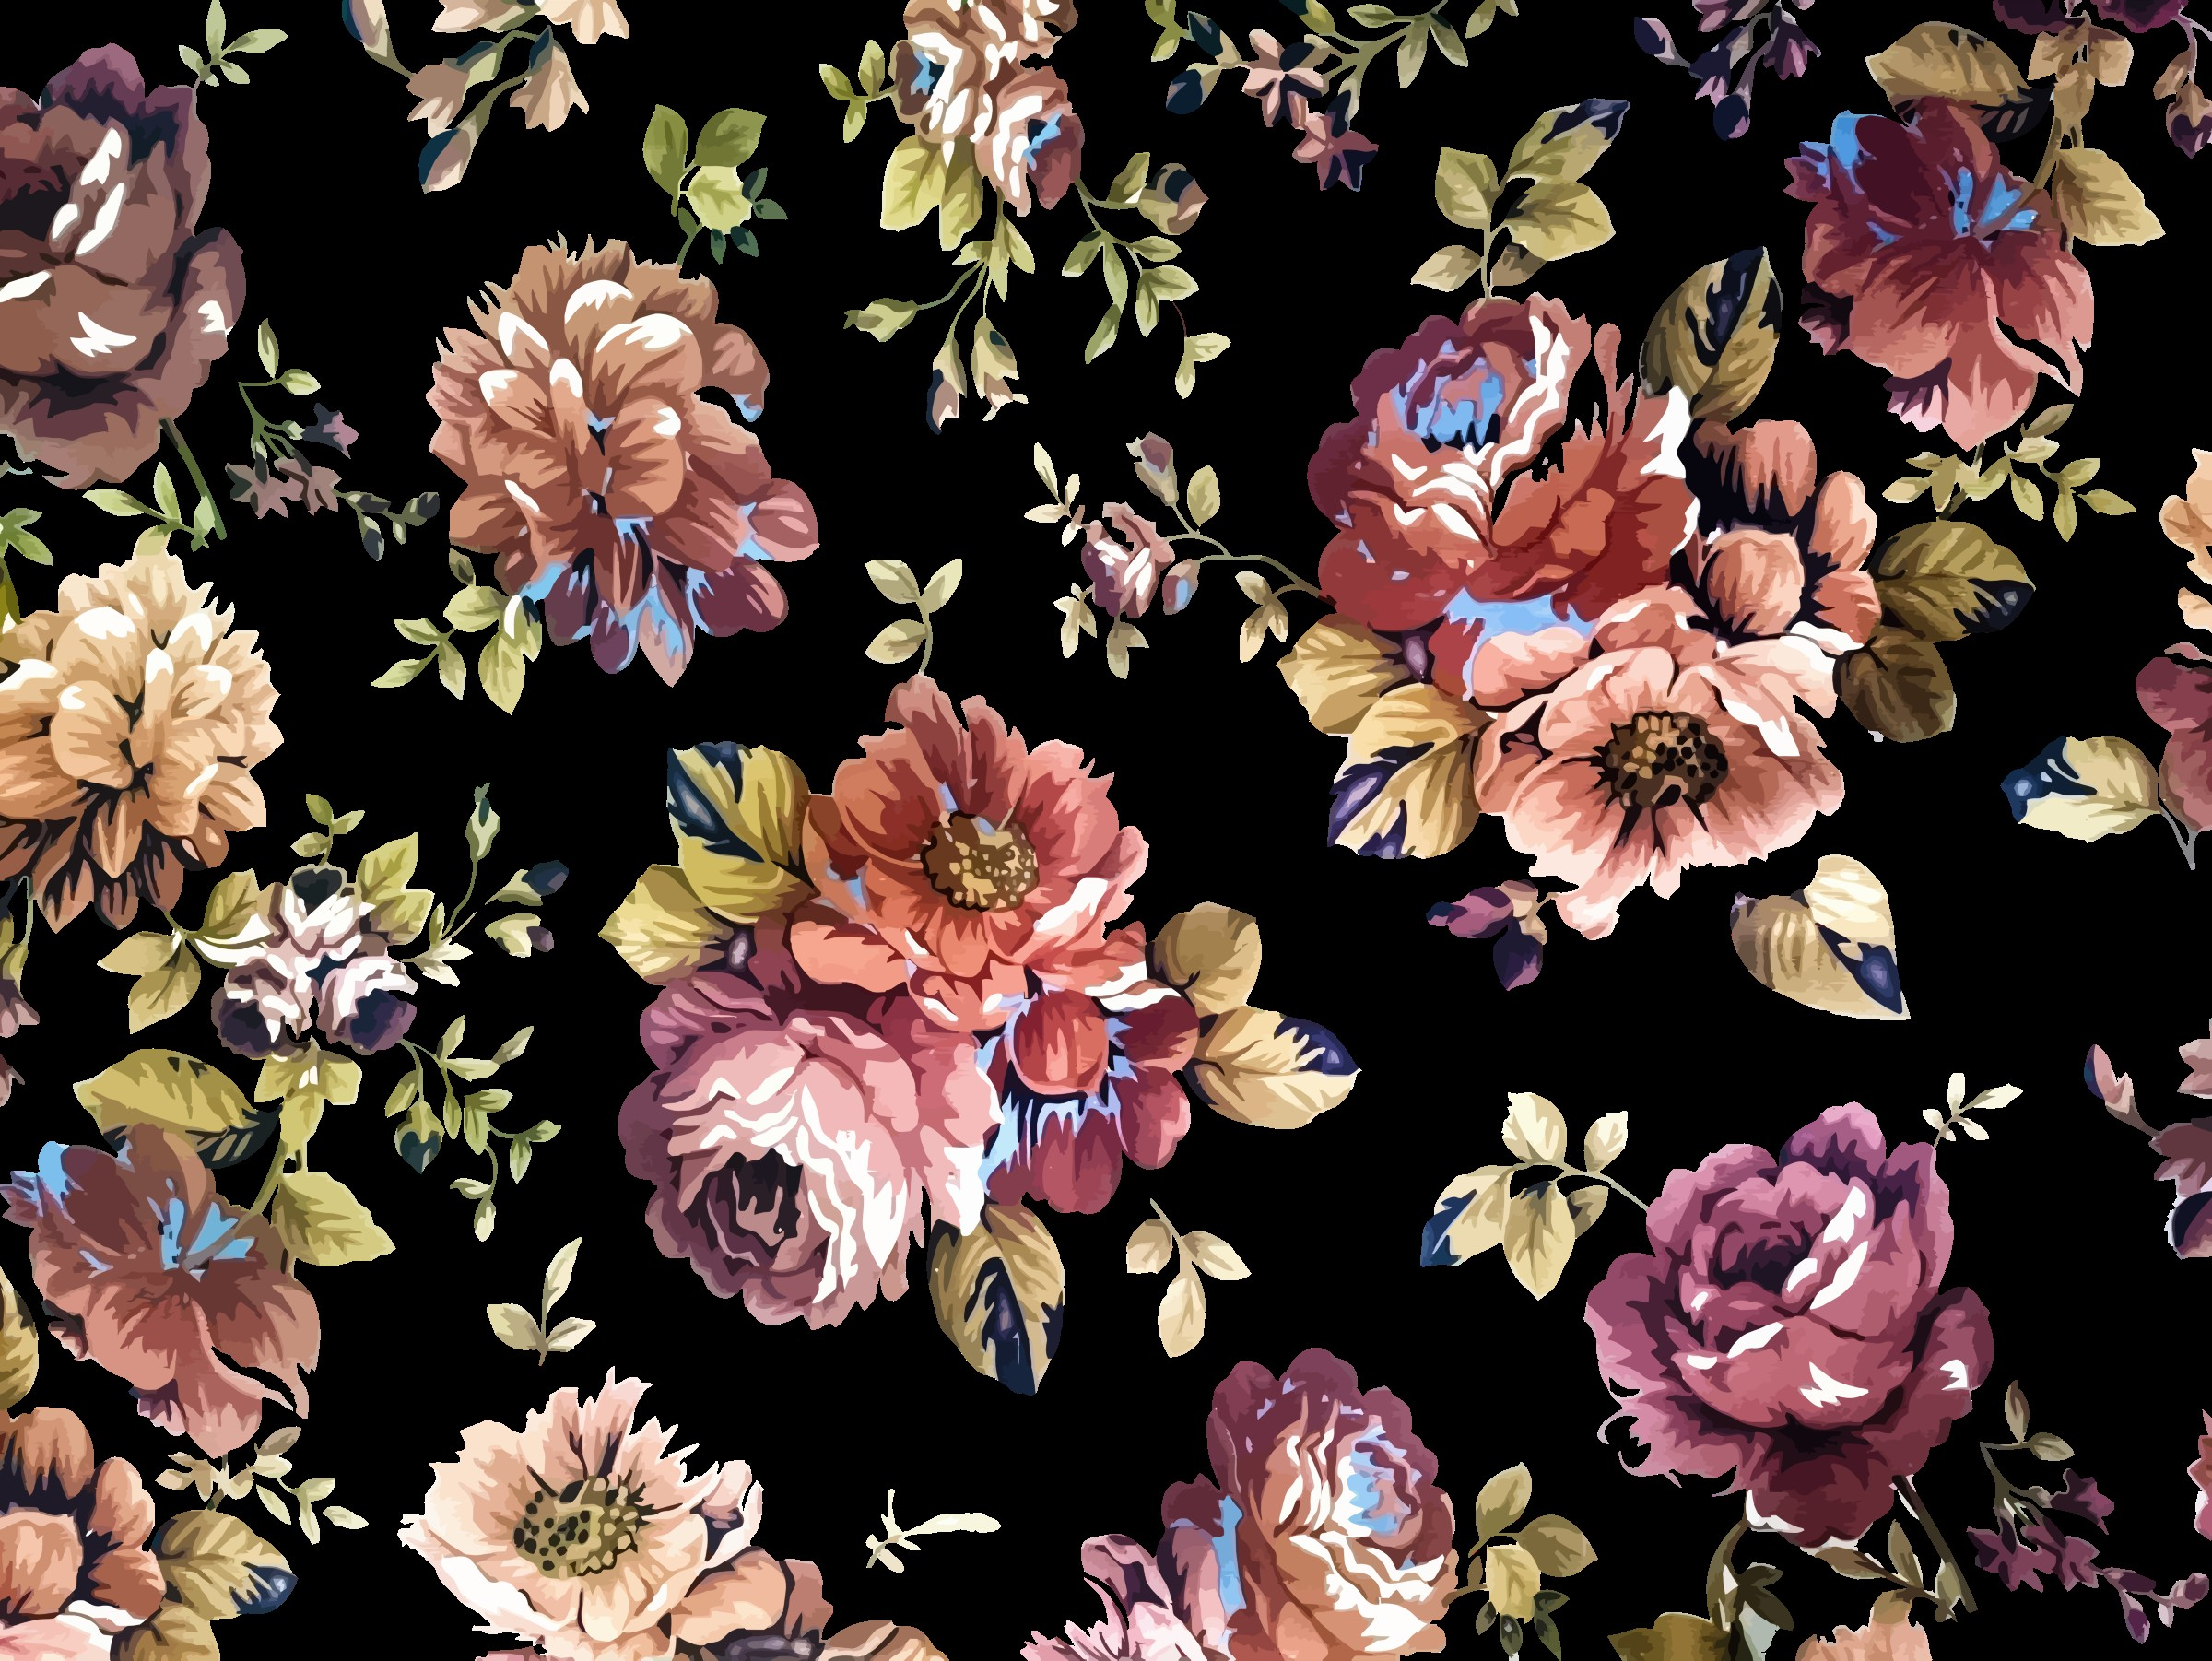 Leaf Wallpaper Quote Mac Vintage Flower Background 183 ① Download Free Amazing High